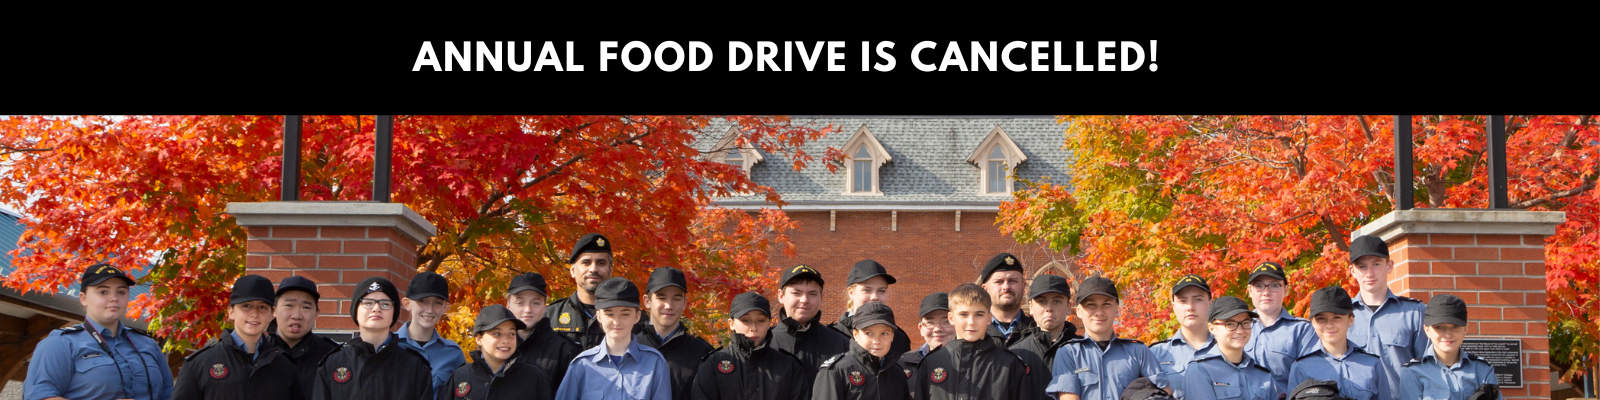 The Annual City Wide Food Drive is Cancelled due to COVID-19